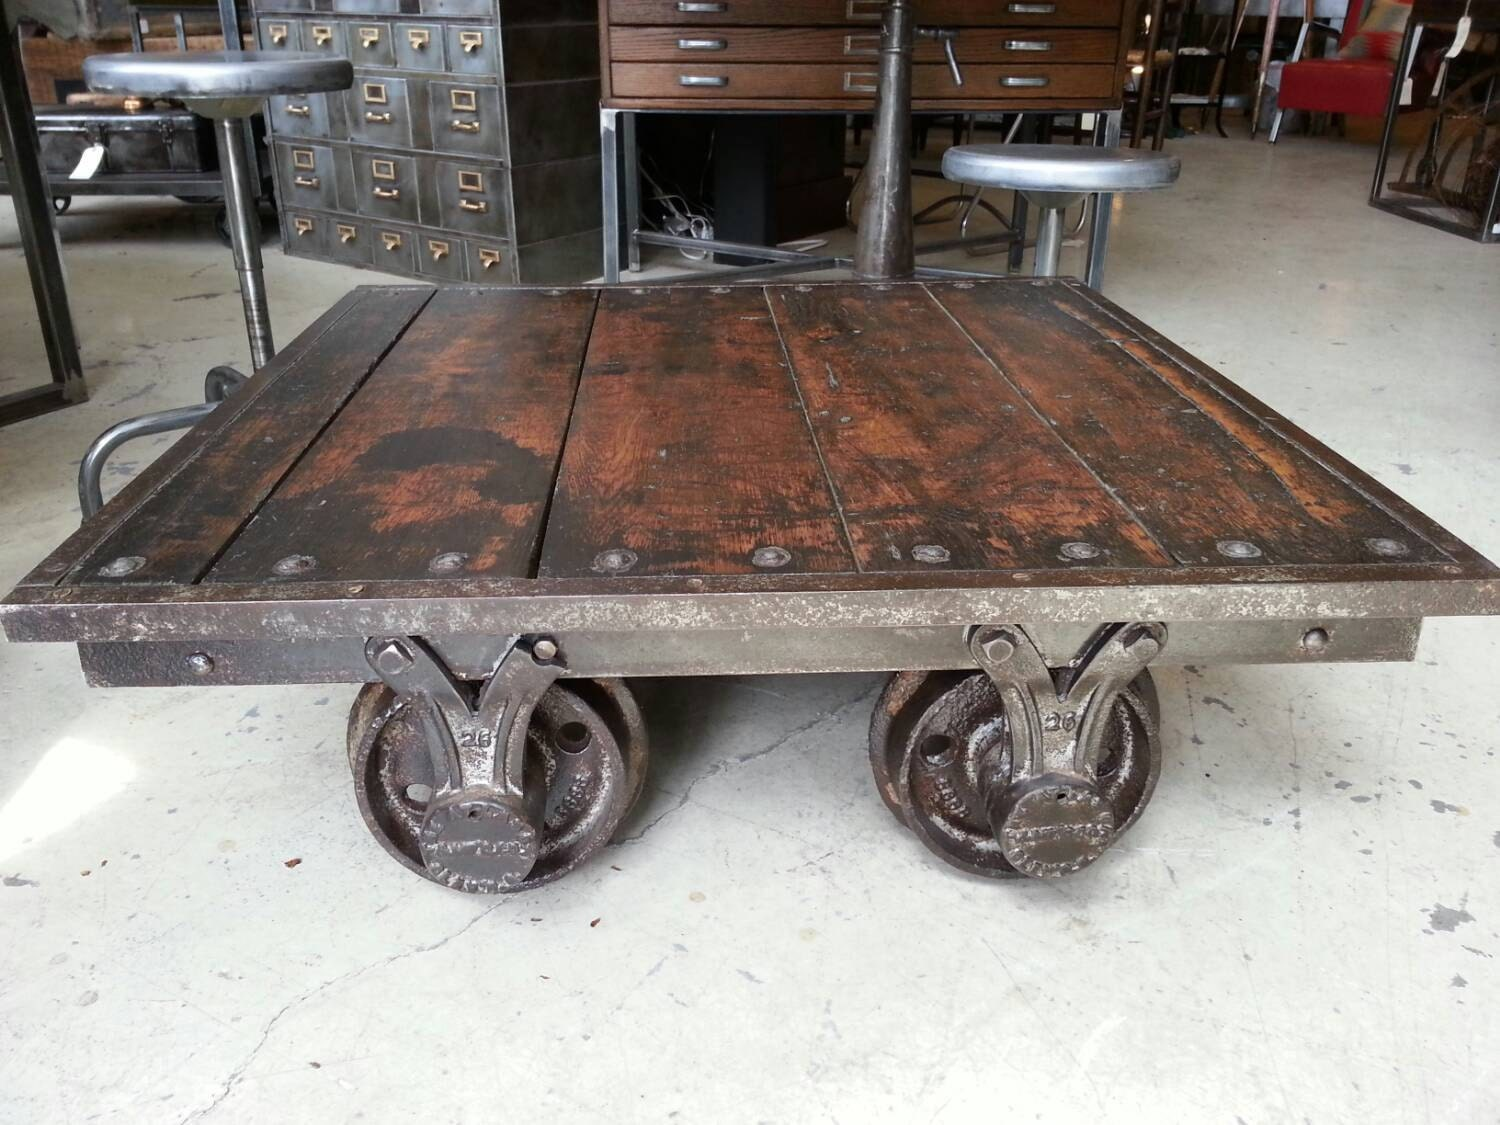 ... Vintage Industrial Railroad Cart Coffee Table. 🔎zoom - Vintage Industrial Railroad Cart Coffee Table